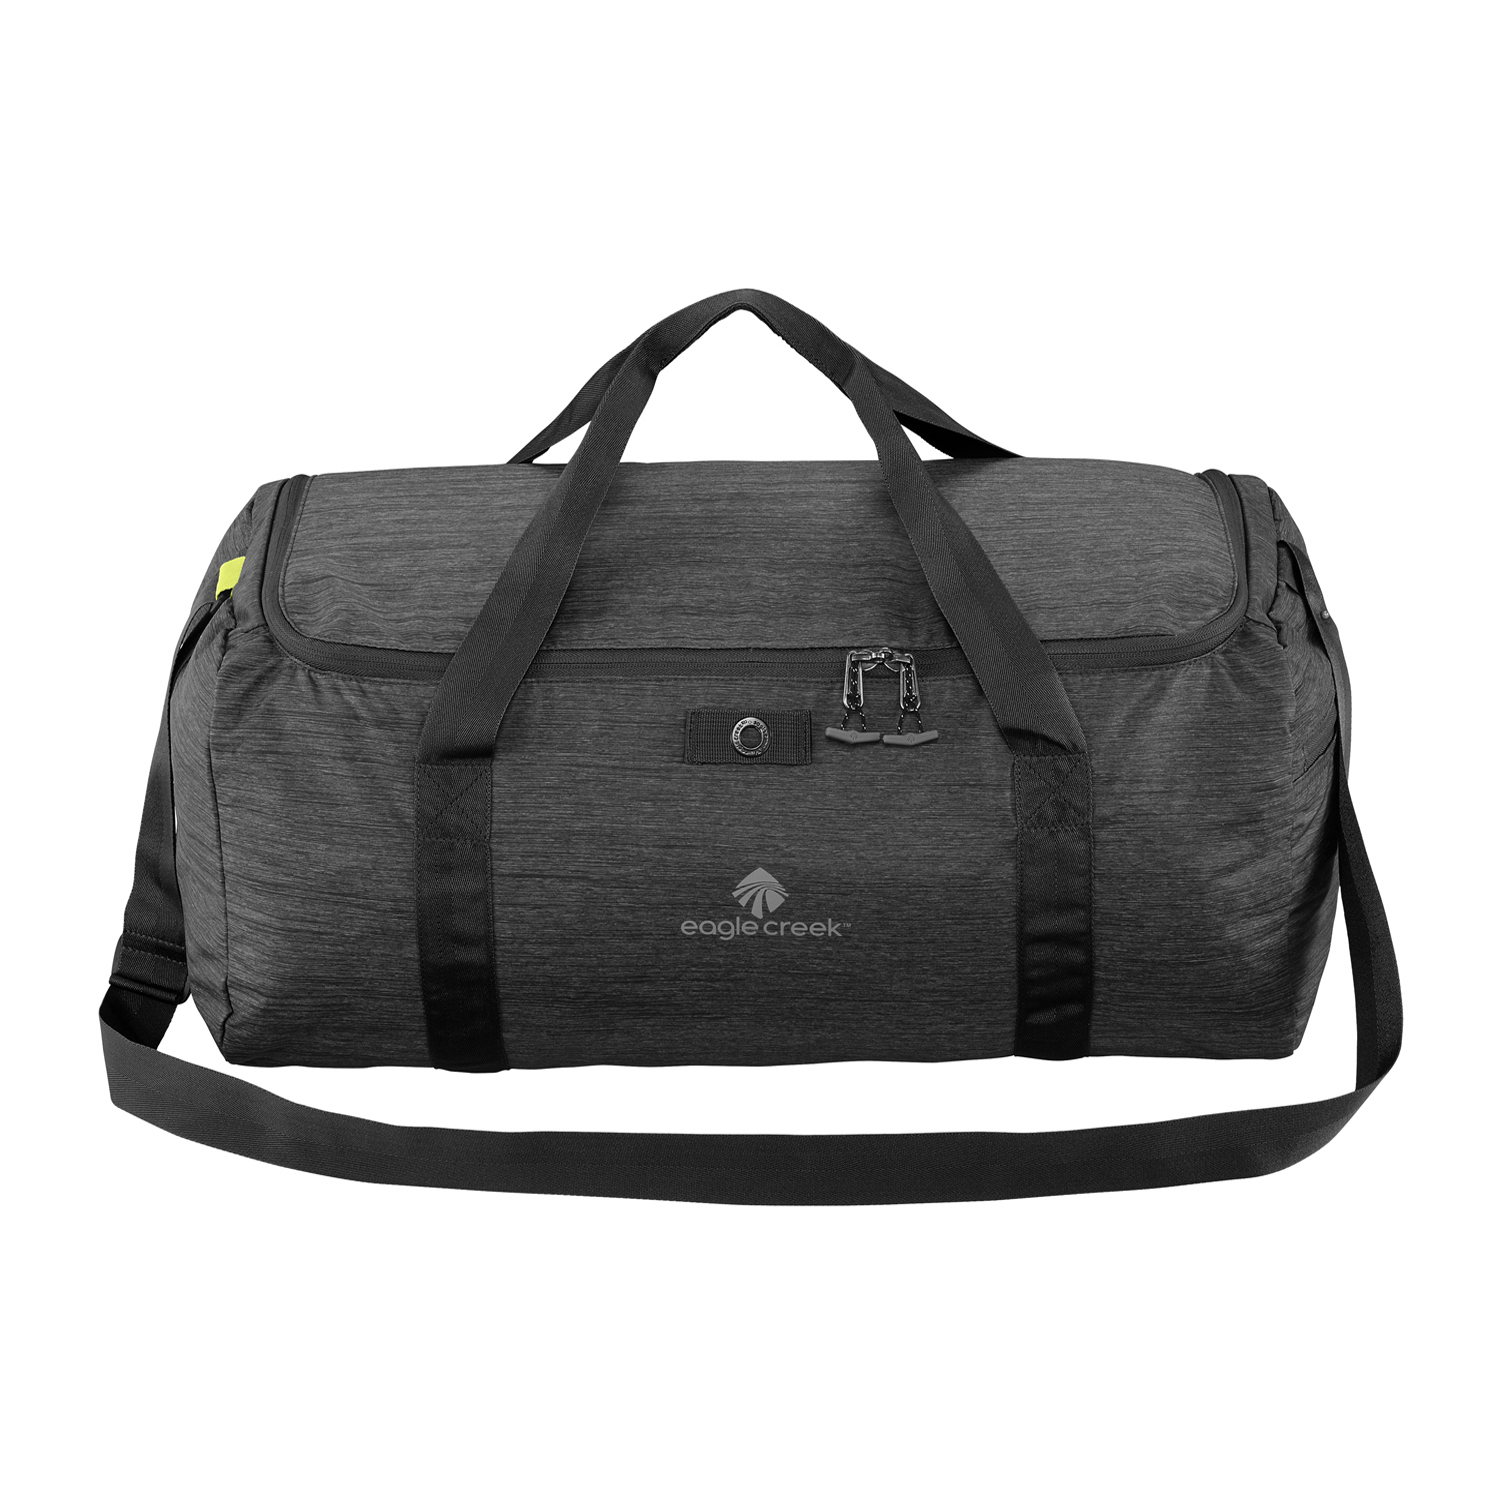 ebc353fb58 Buy Eagle Creek Packable Duffel (Black) in Singapore   Malaysia - The  Planet Traveller